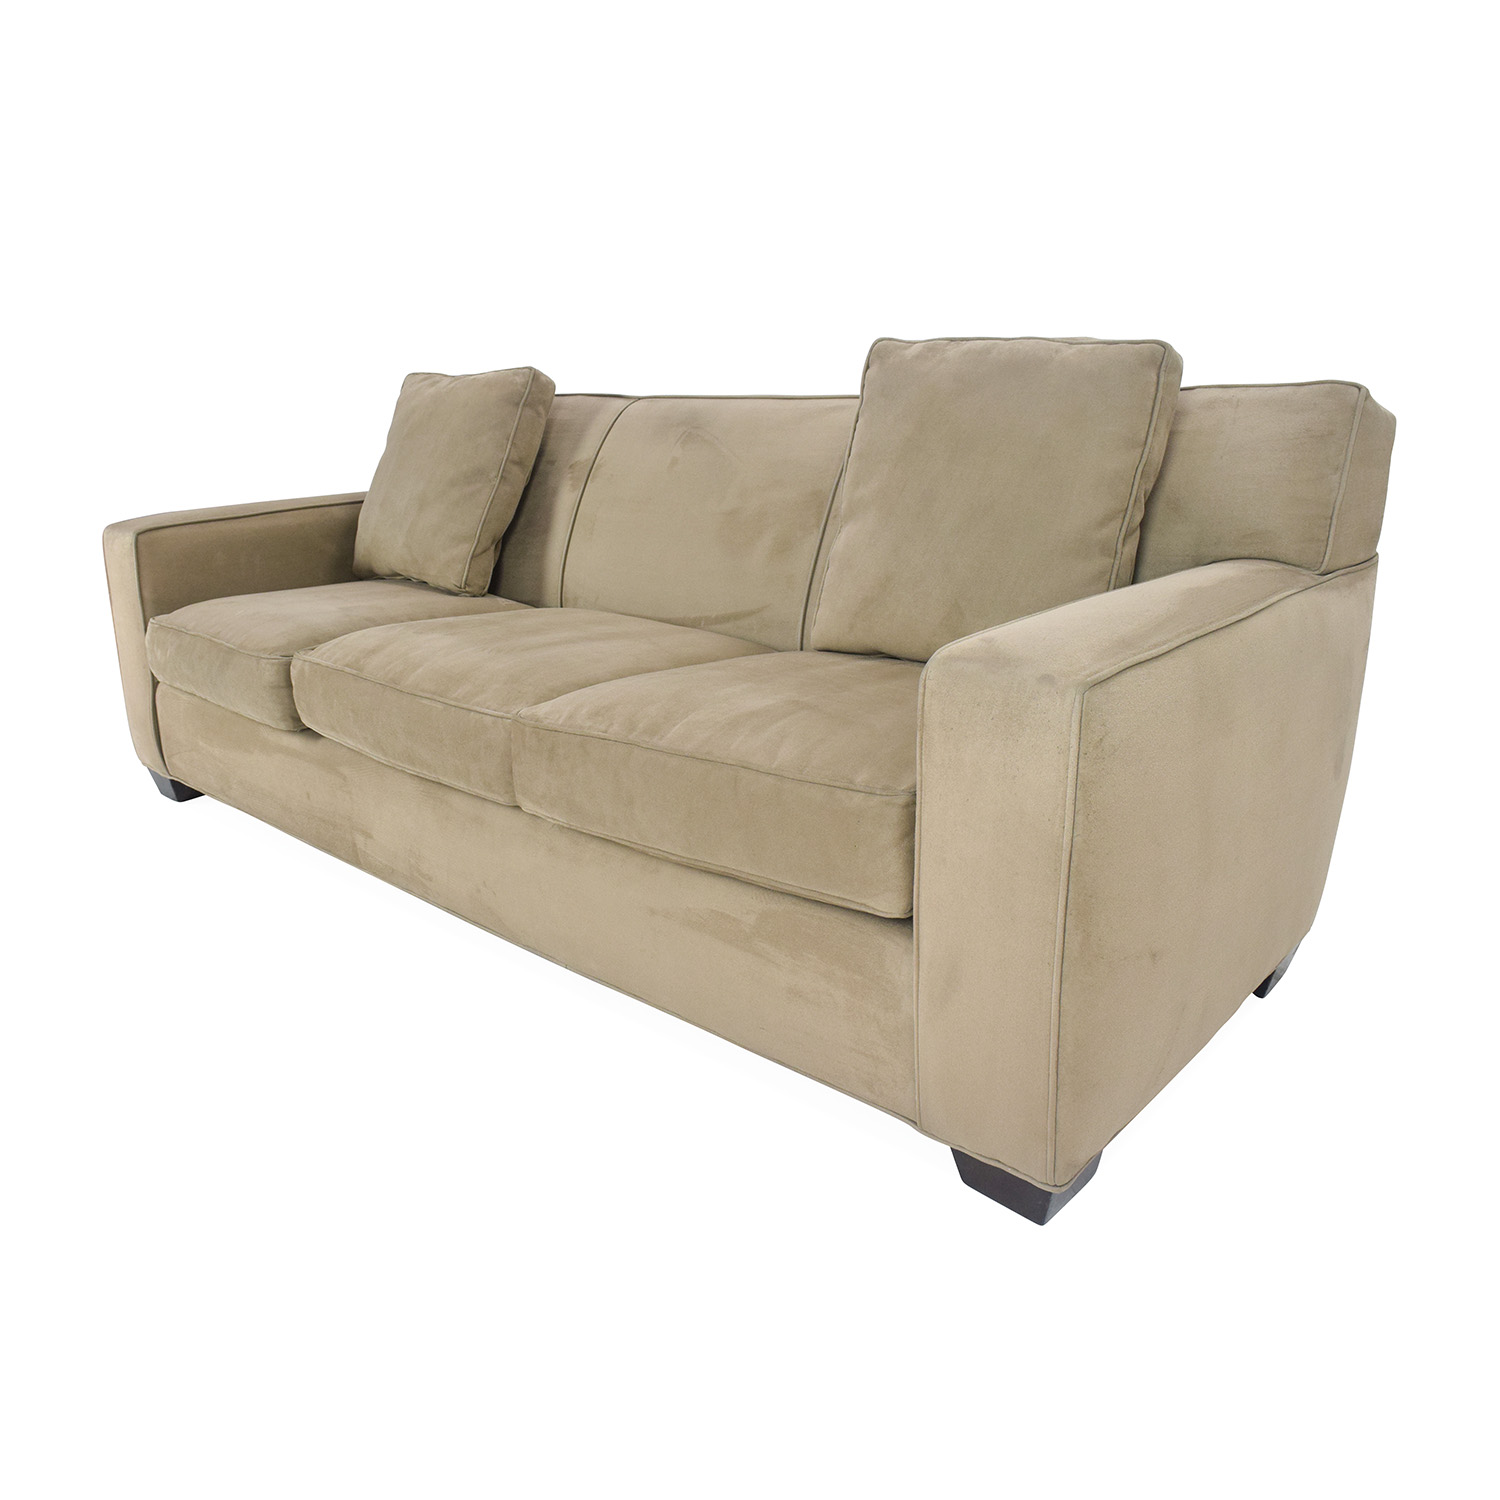 Cameron Sleeper Sofa Crate And Barrel